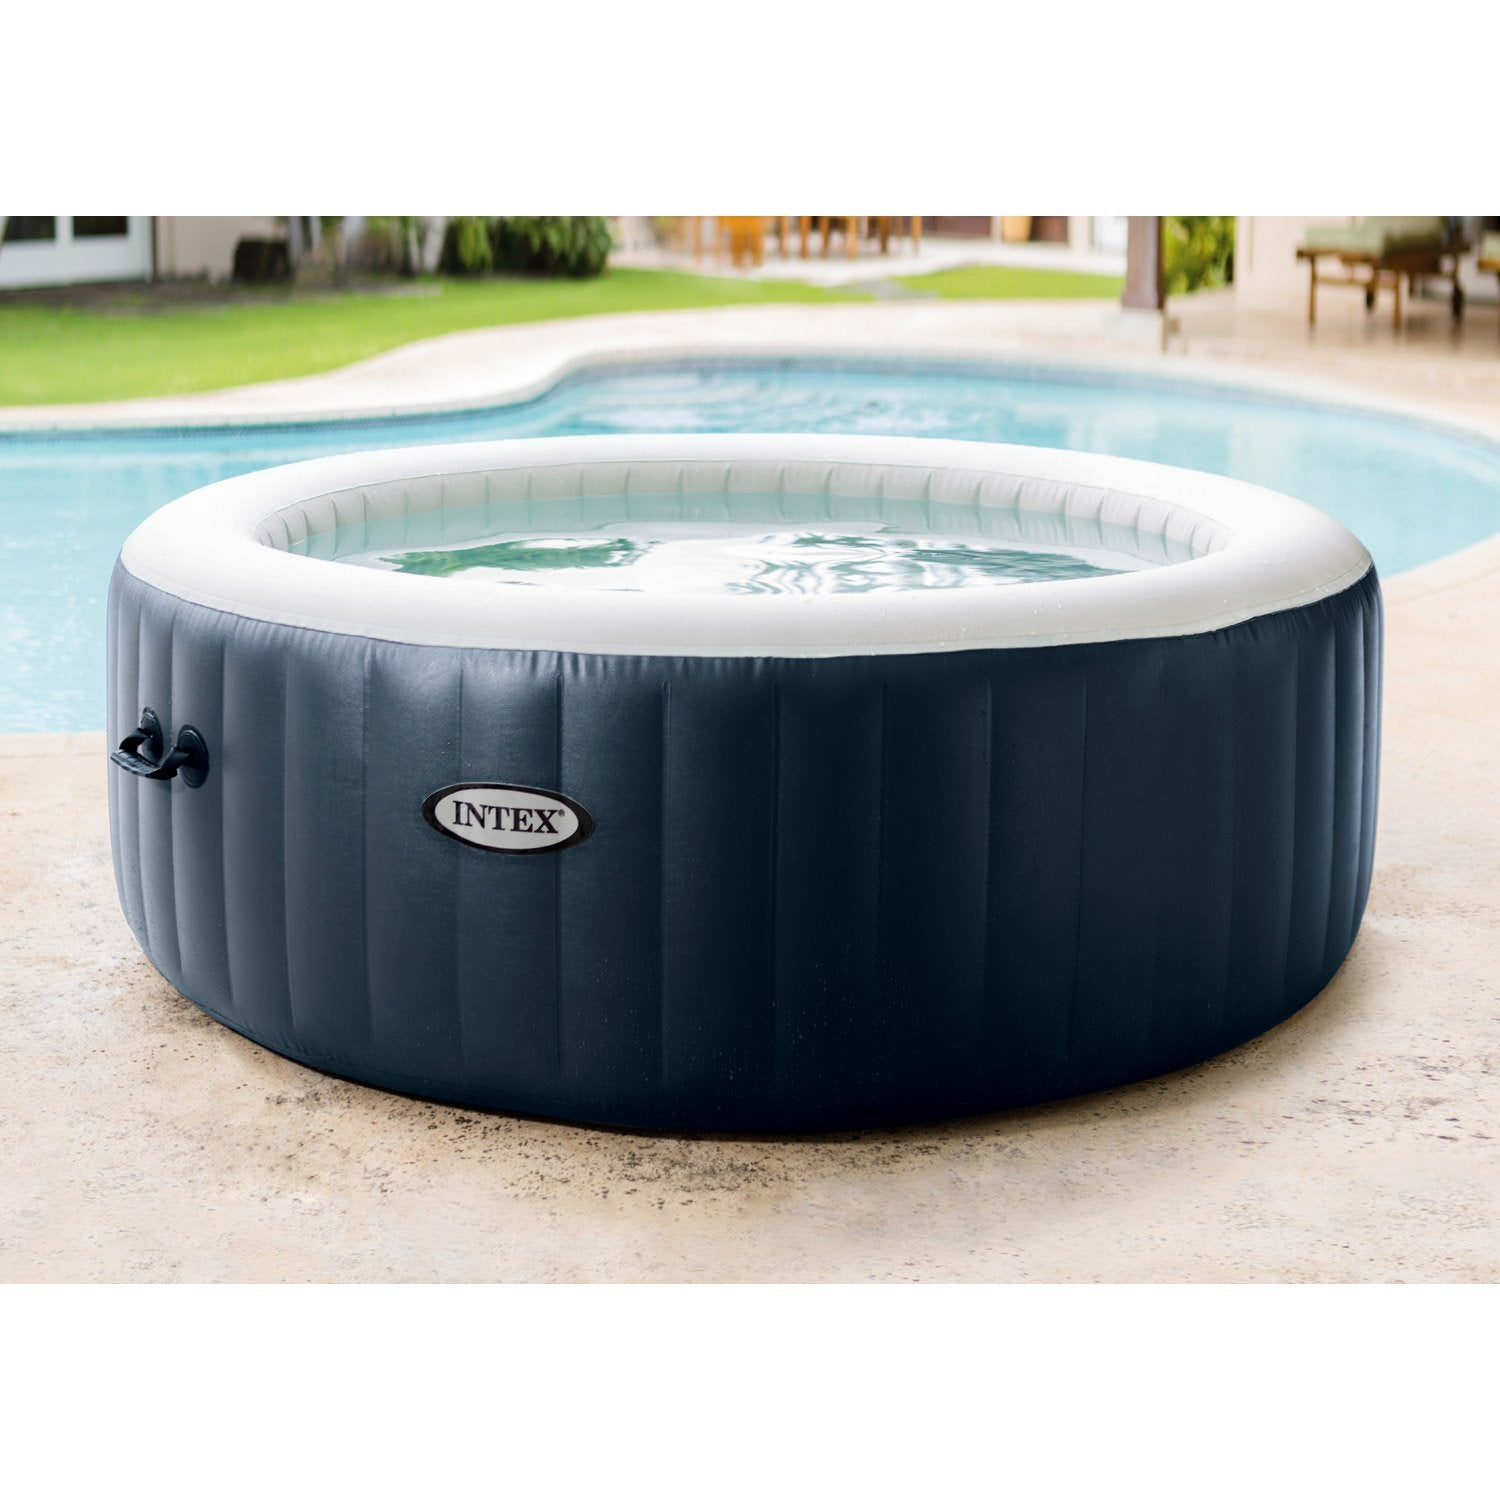 Spa gonflable intex purespa bulles blue navy rond 6 for Spa gonflable exterieur